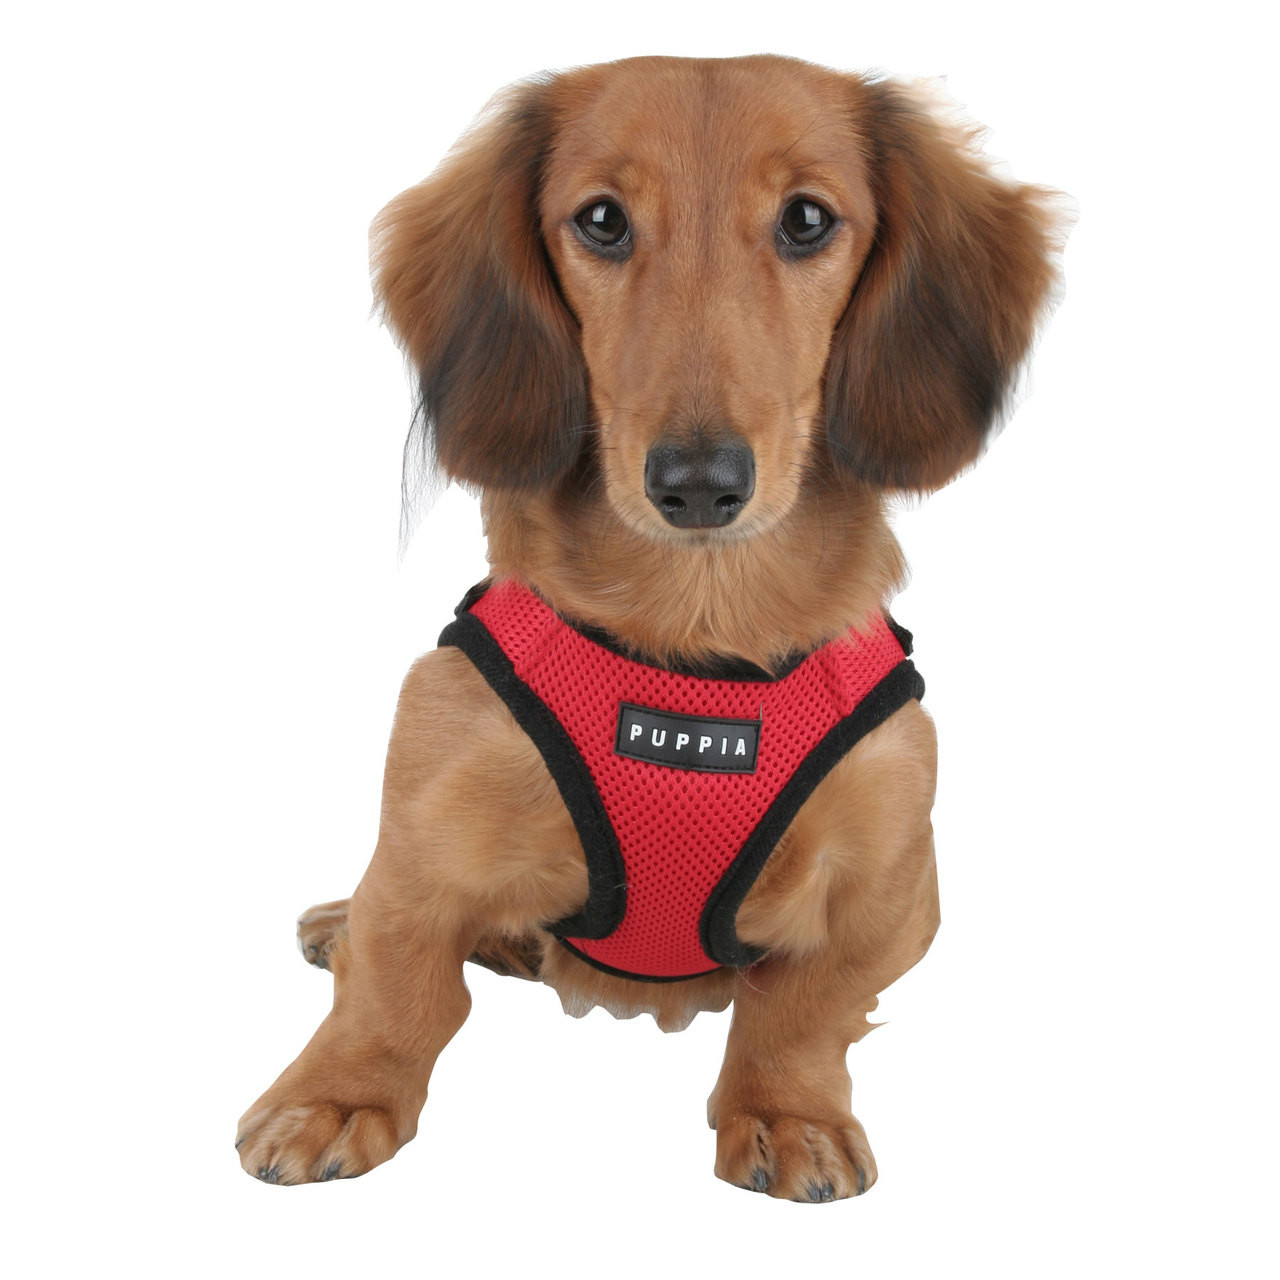 Puppia Soft Mesh Vest in Red on Dachshund